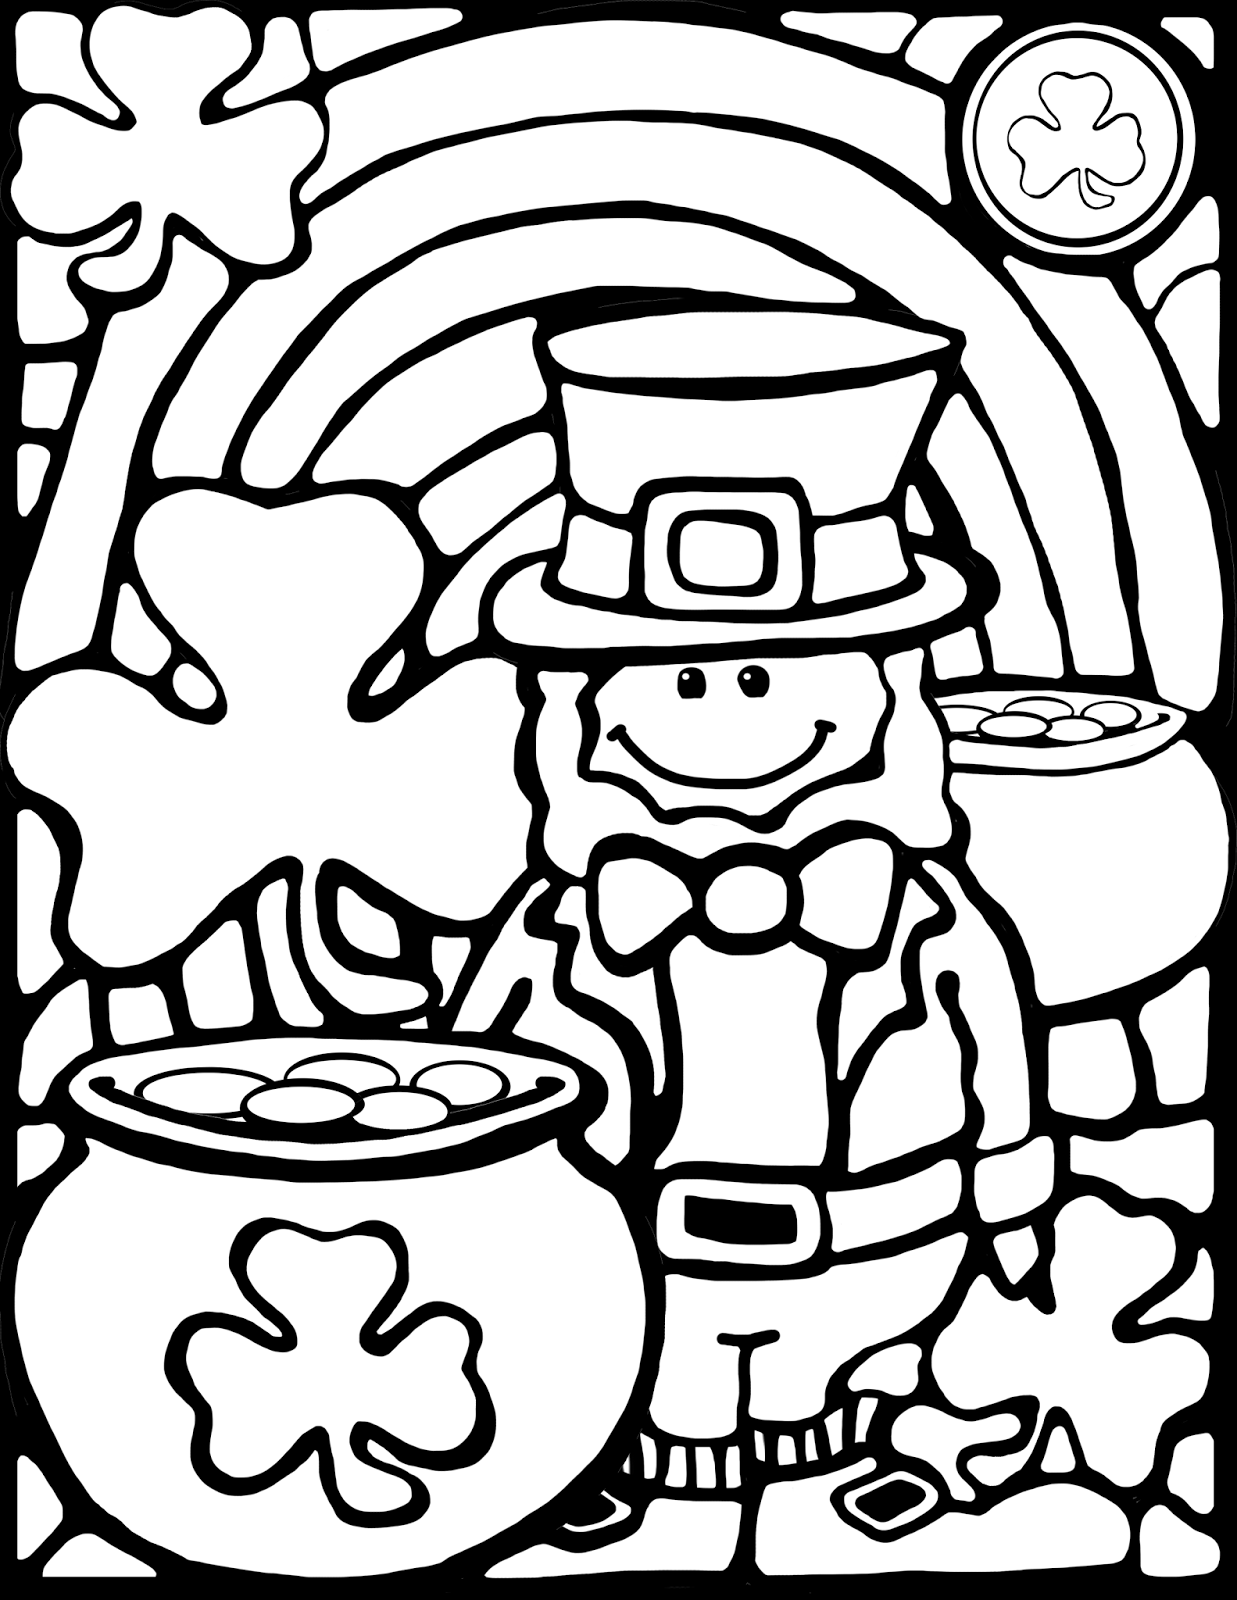 Free Download Stained Glass Style Leprechaun For Coloring Projects Spring Coloring Pages St Patrick S Day Crafts Coloring Pages [ 1600 x 1237 Pixel ]